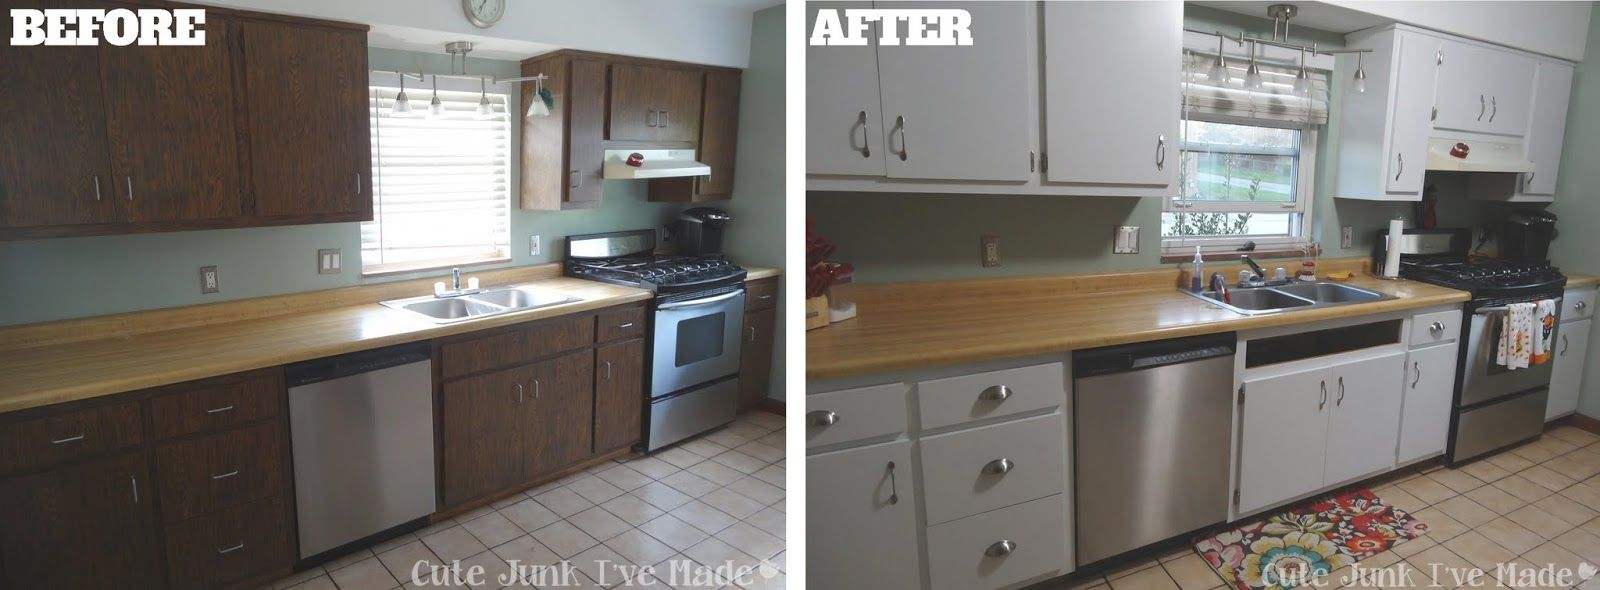 How To Paint Laminate Cabinets   Before U0026 After. Need To Finally Do  Something About